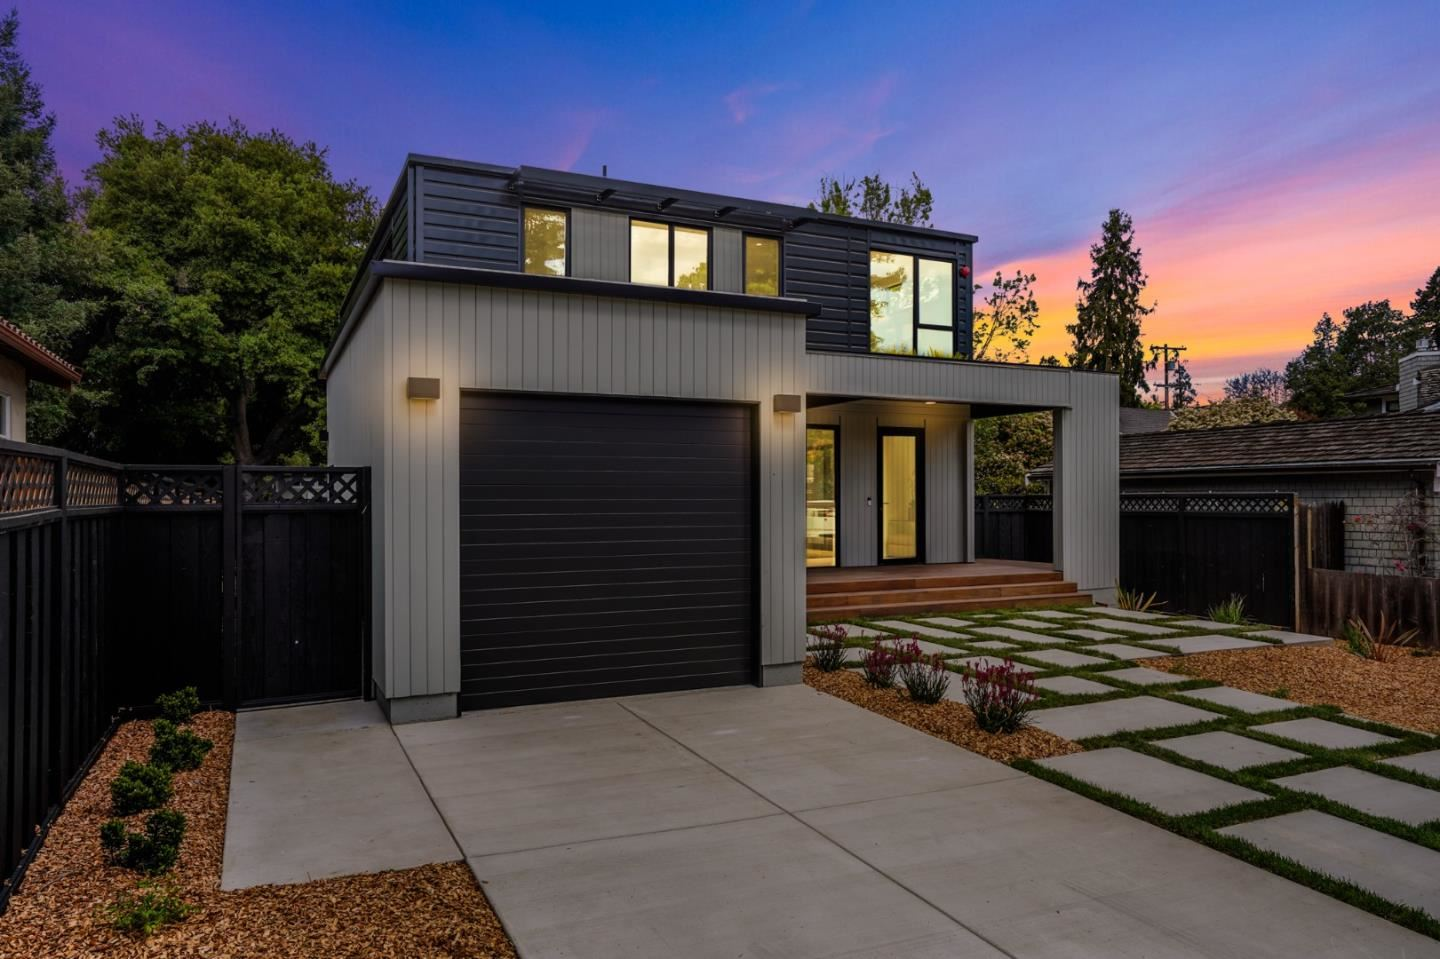 Photo for 119 Baywood Avenue, MENLO PARK, CA 94025 (MLS # ML81818932)